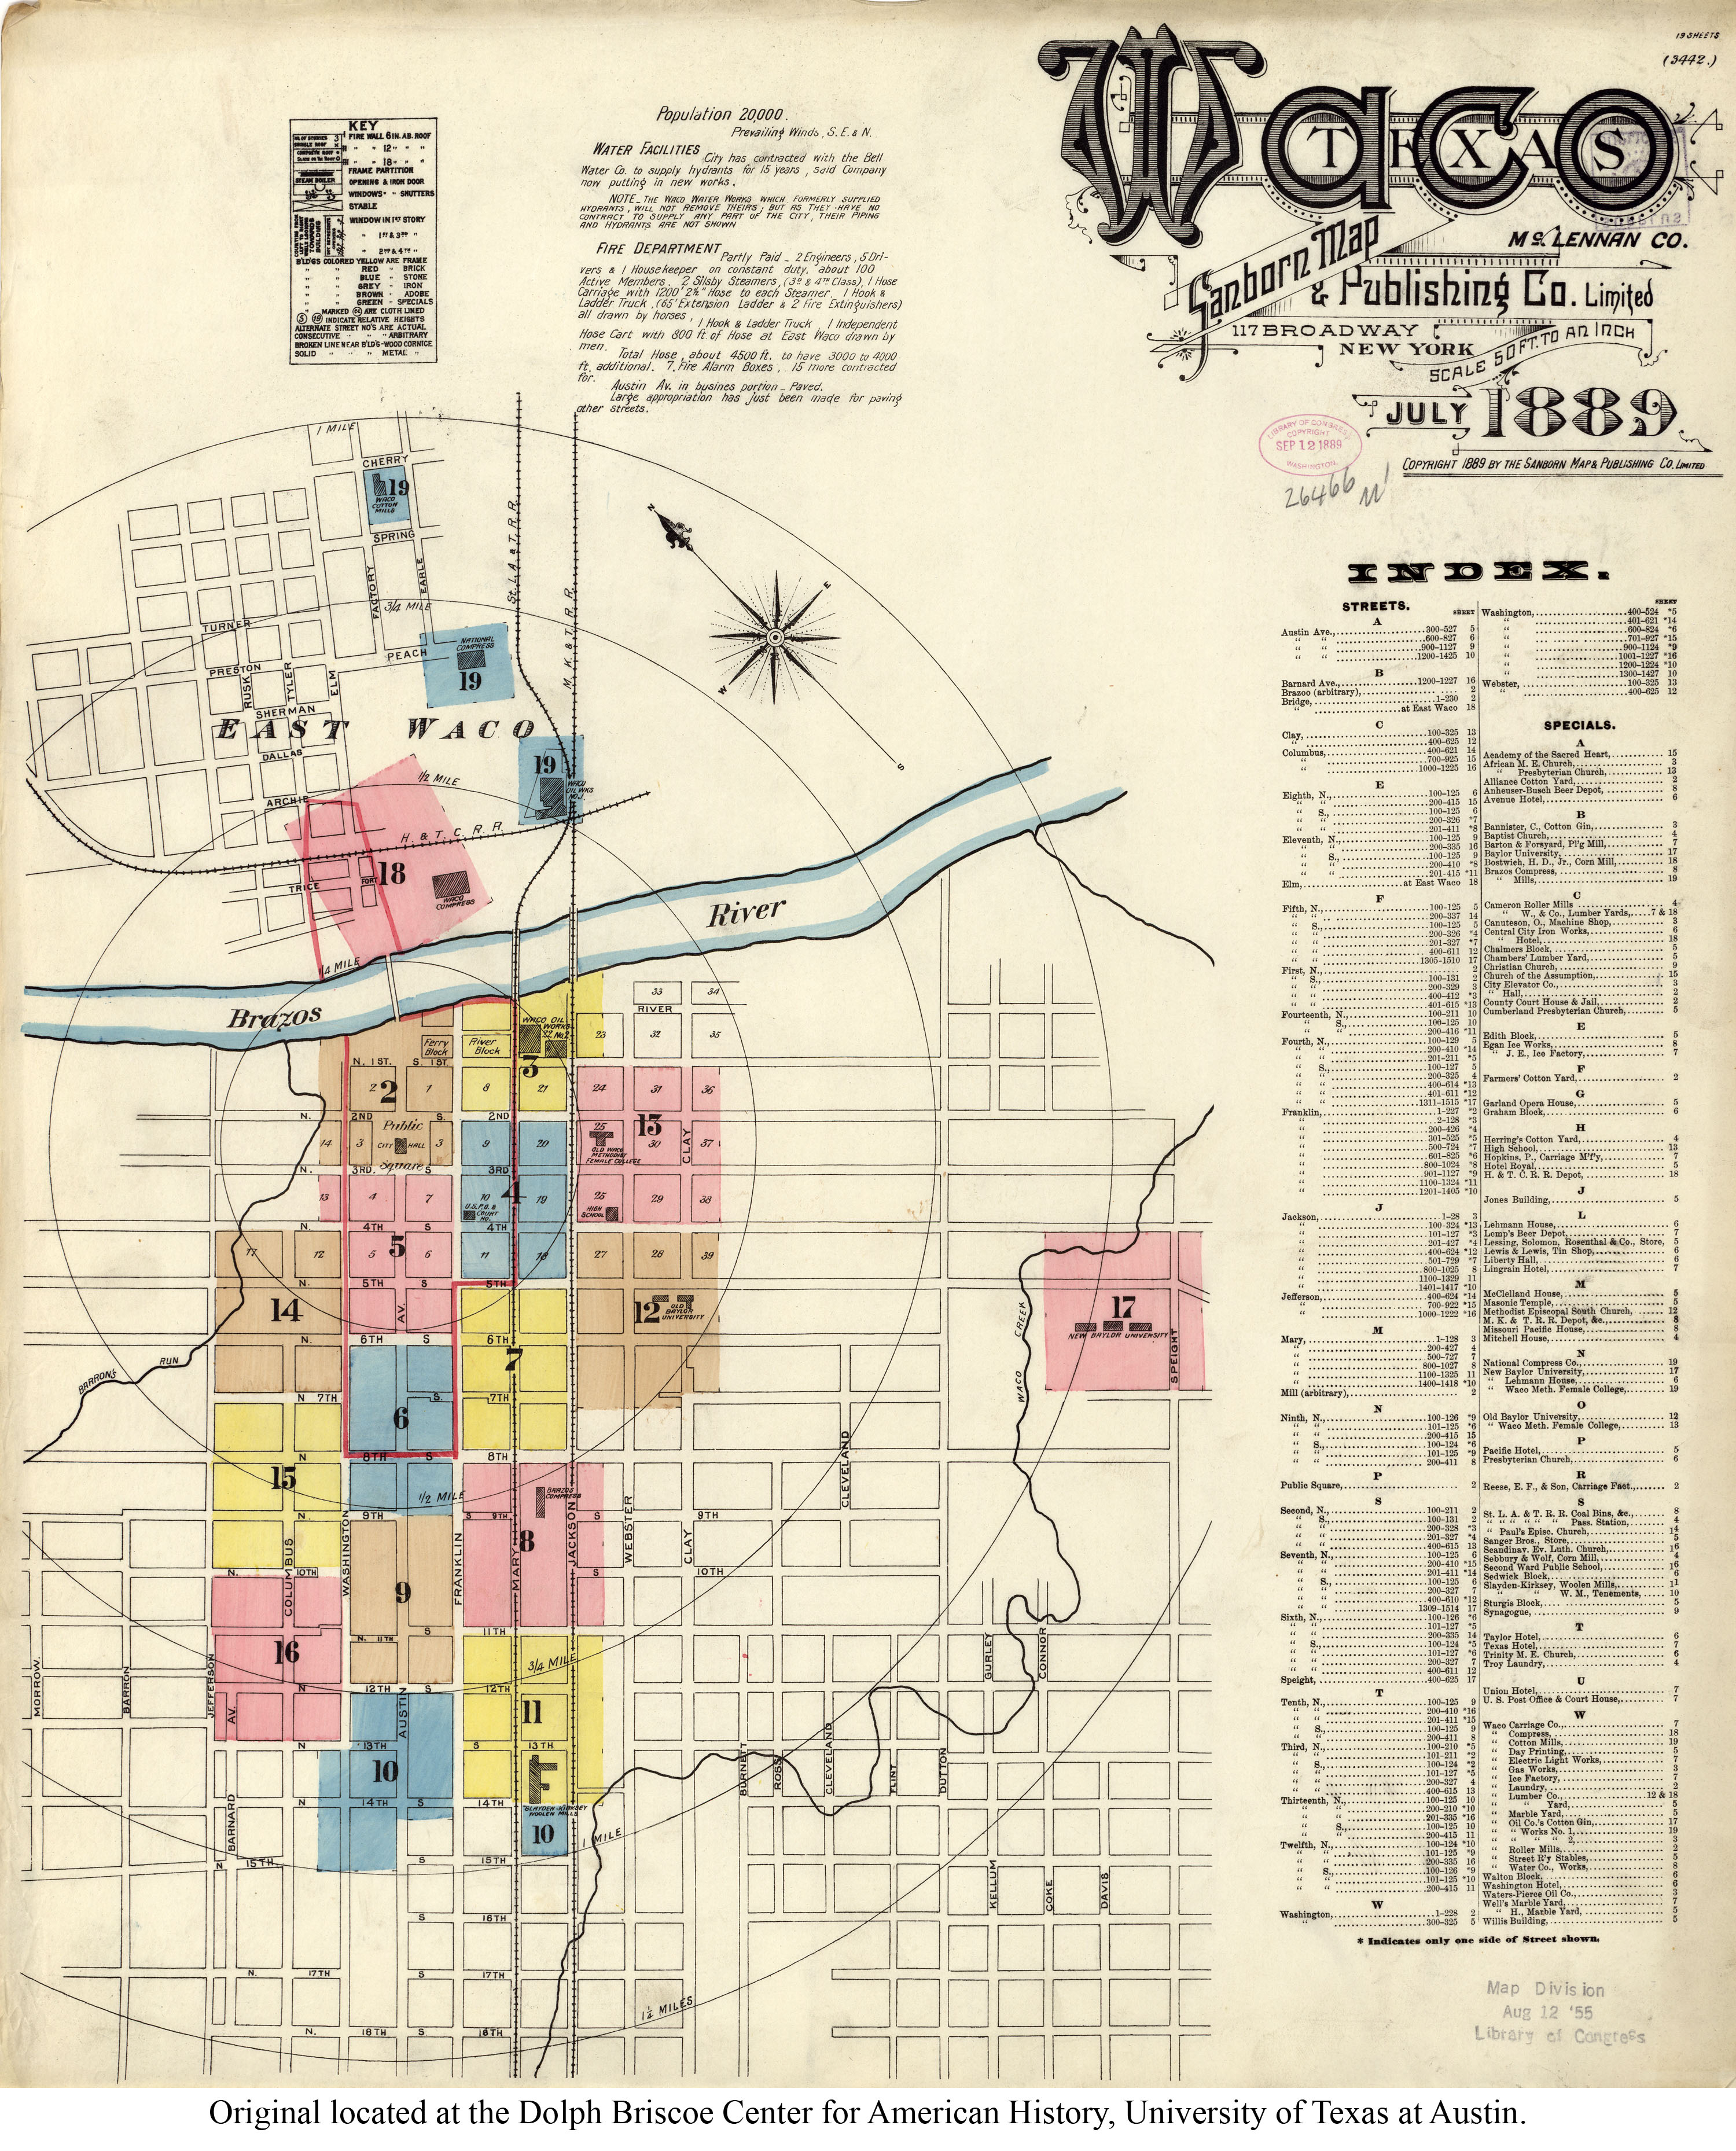 Waco Texas Map Location And Travel Information   Download Free Waco - Map Of Waco Texas And Surrounding Area